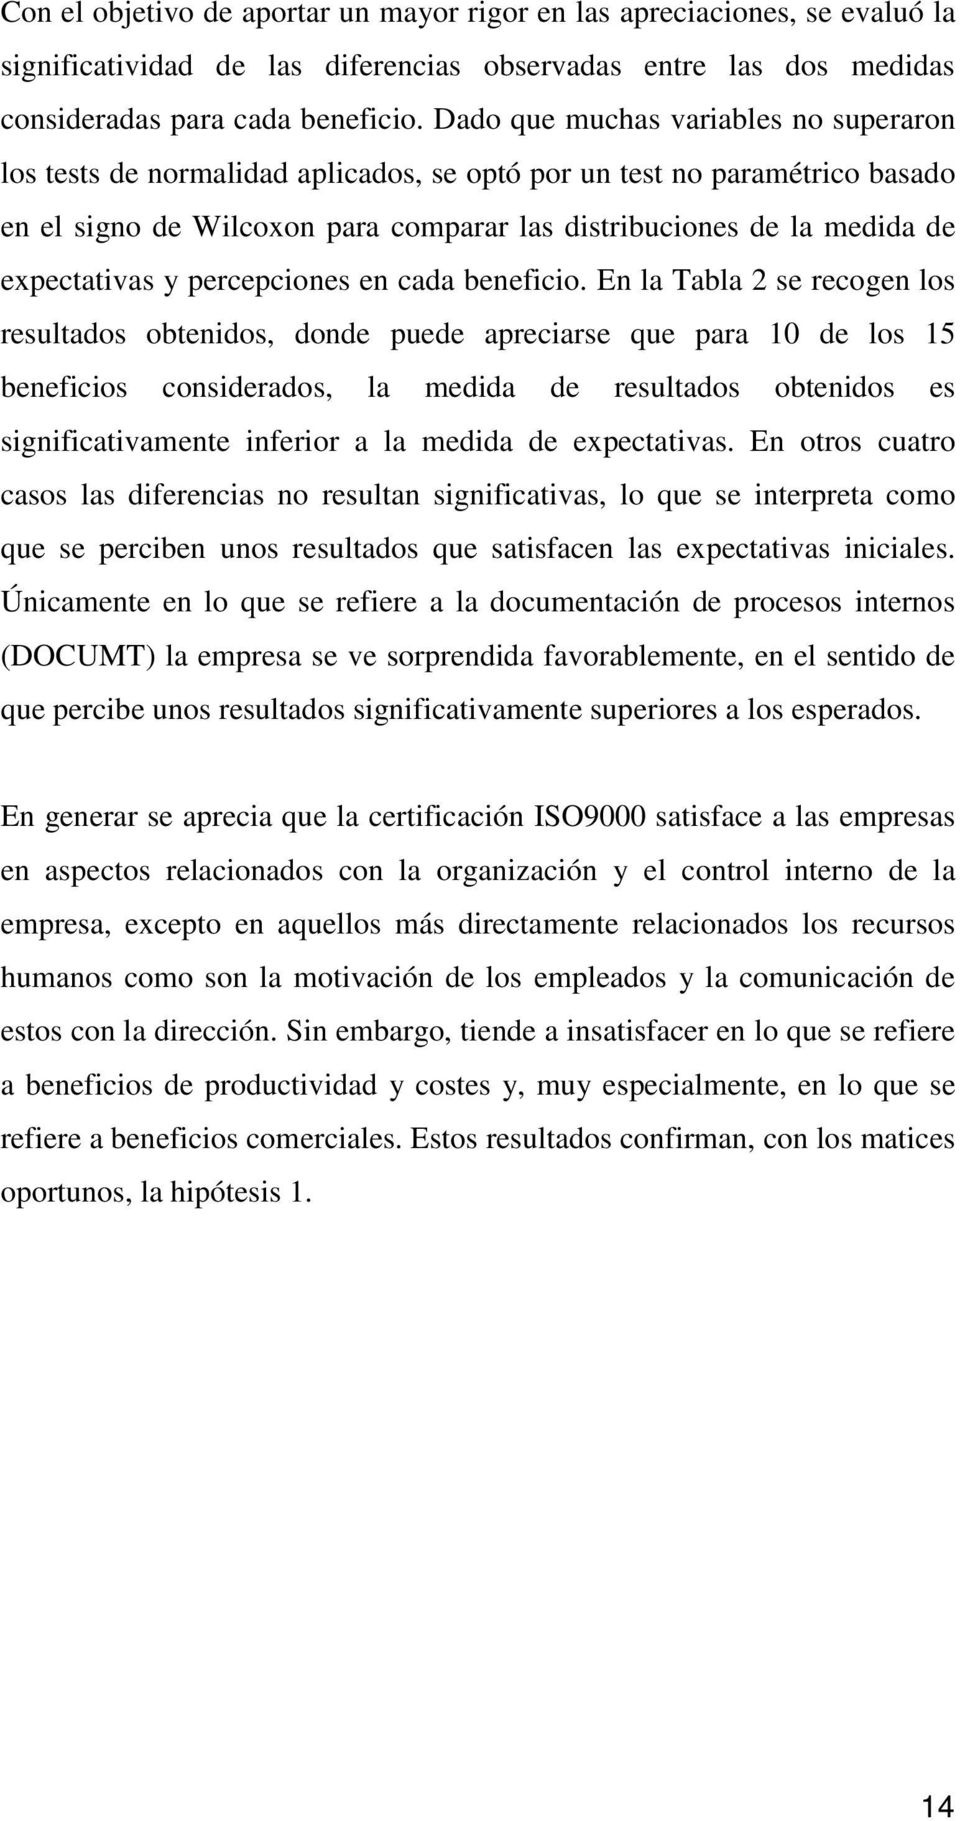 expectativas y percepciones en cada beneficio.